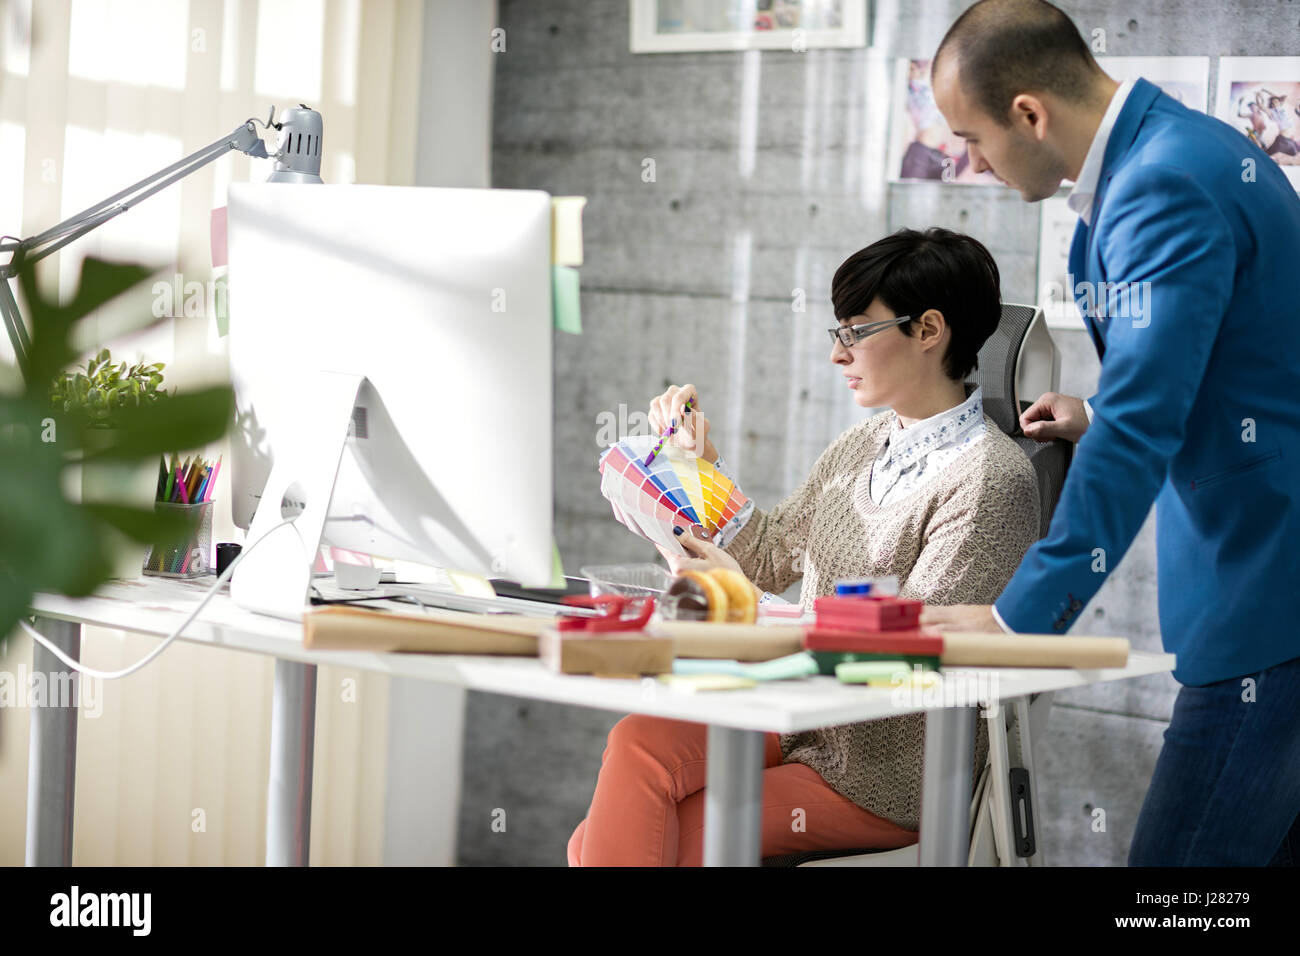 Female designer with male colleagues at design studio - Stock Image